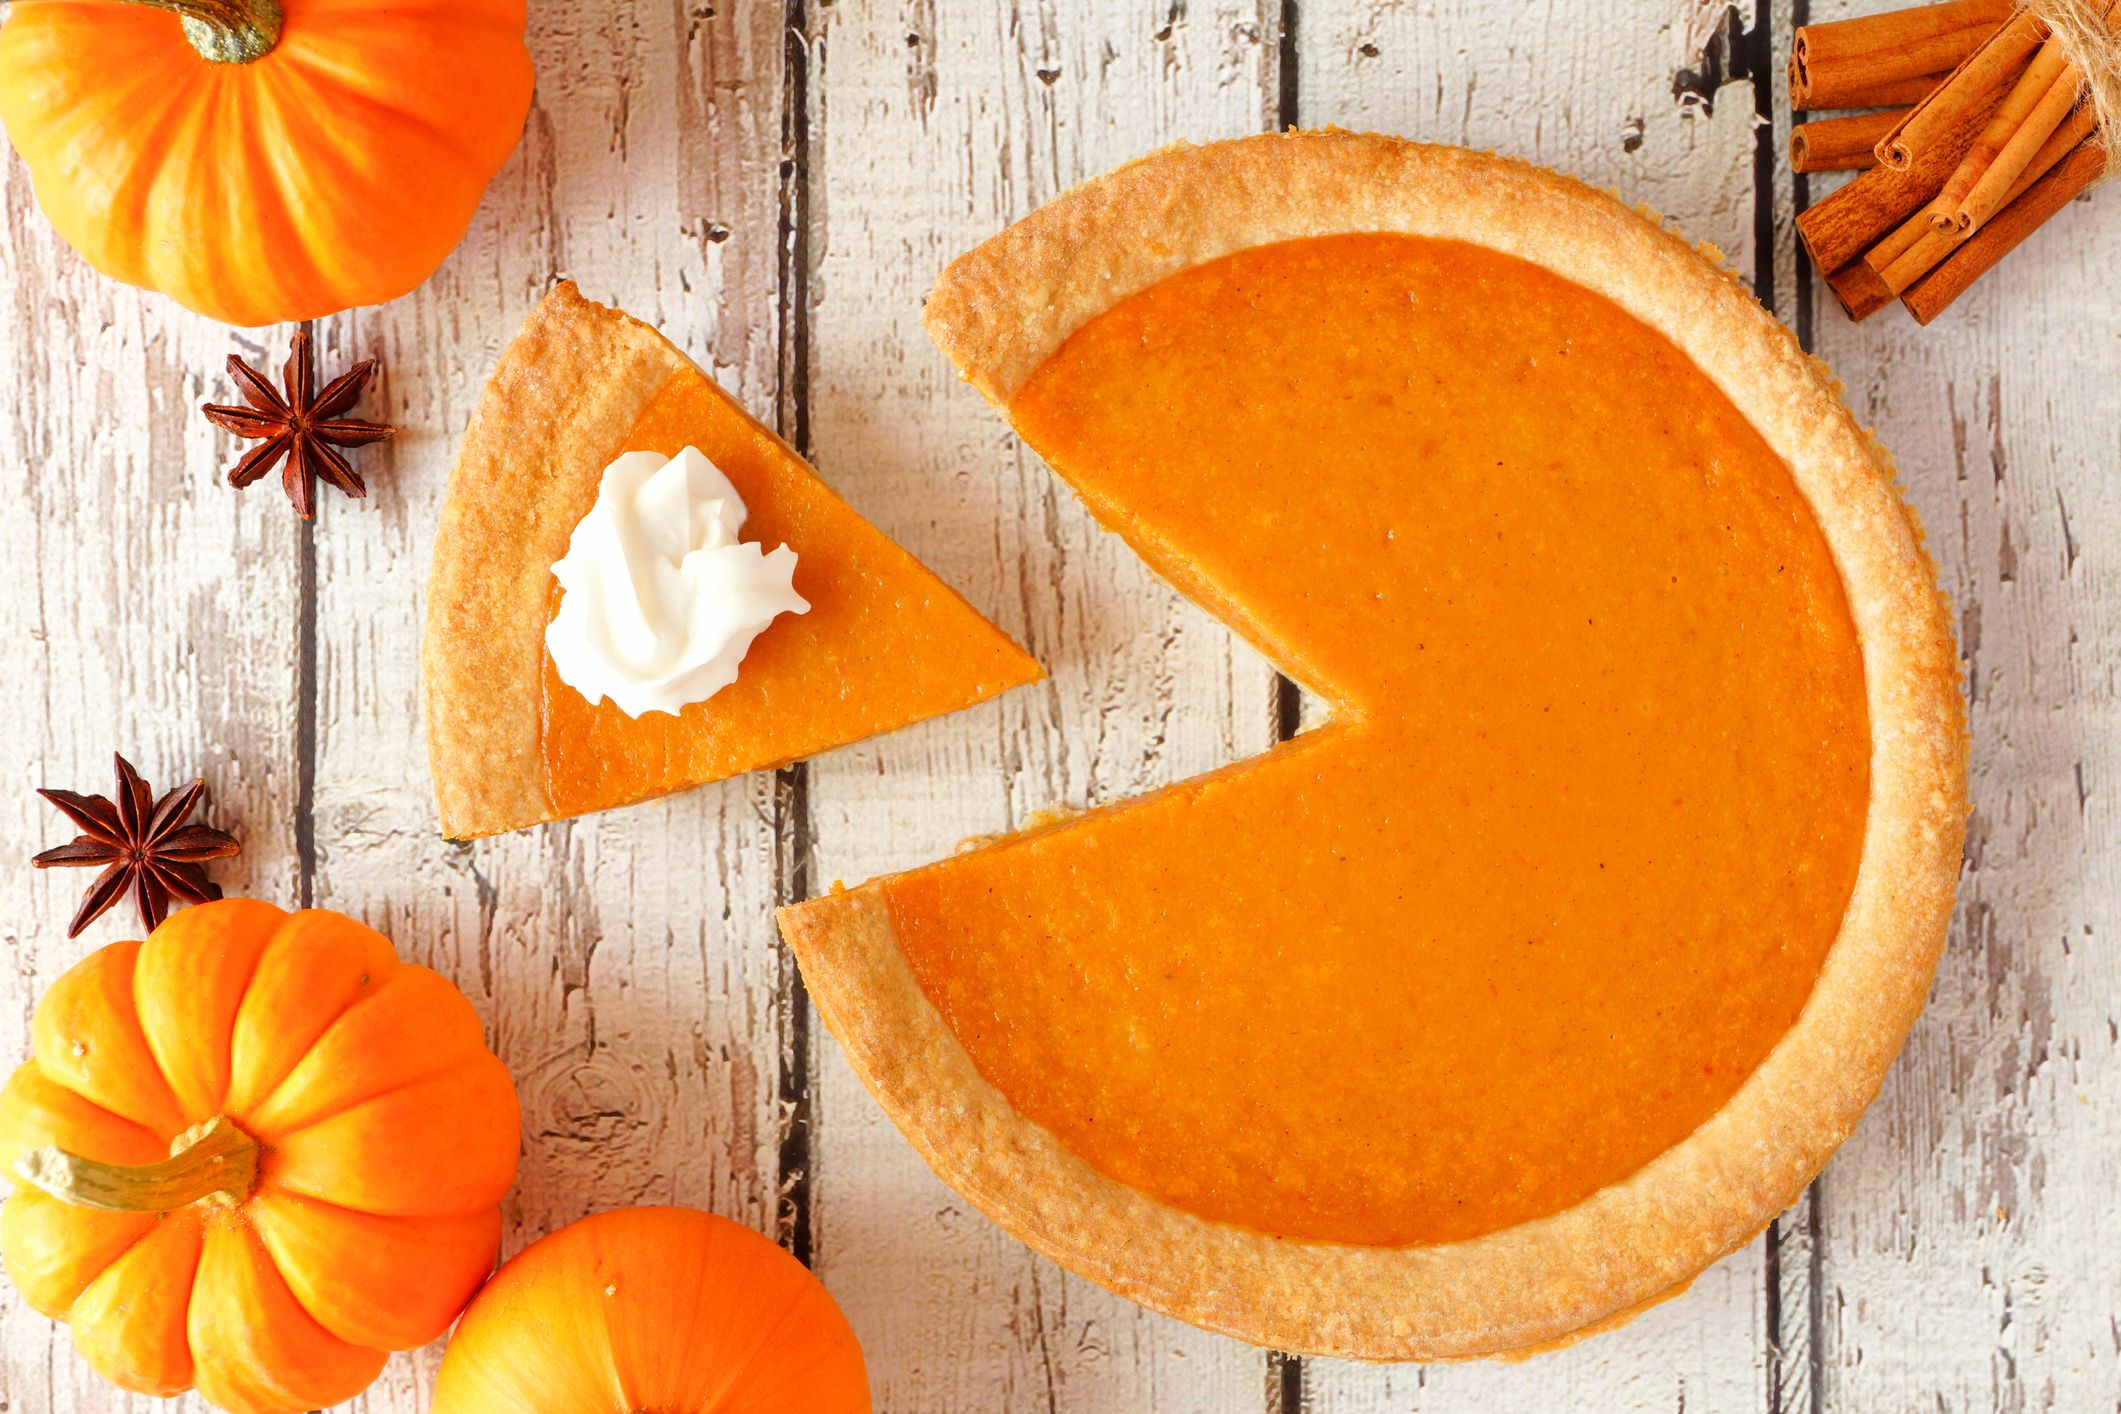 50 Best Pumpkin Recipes to Make This Fall Season